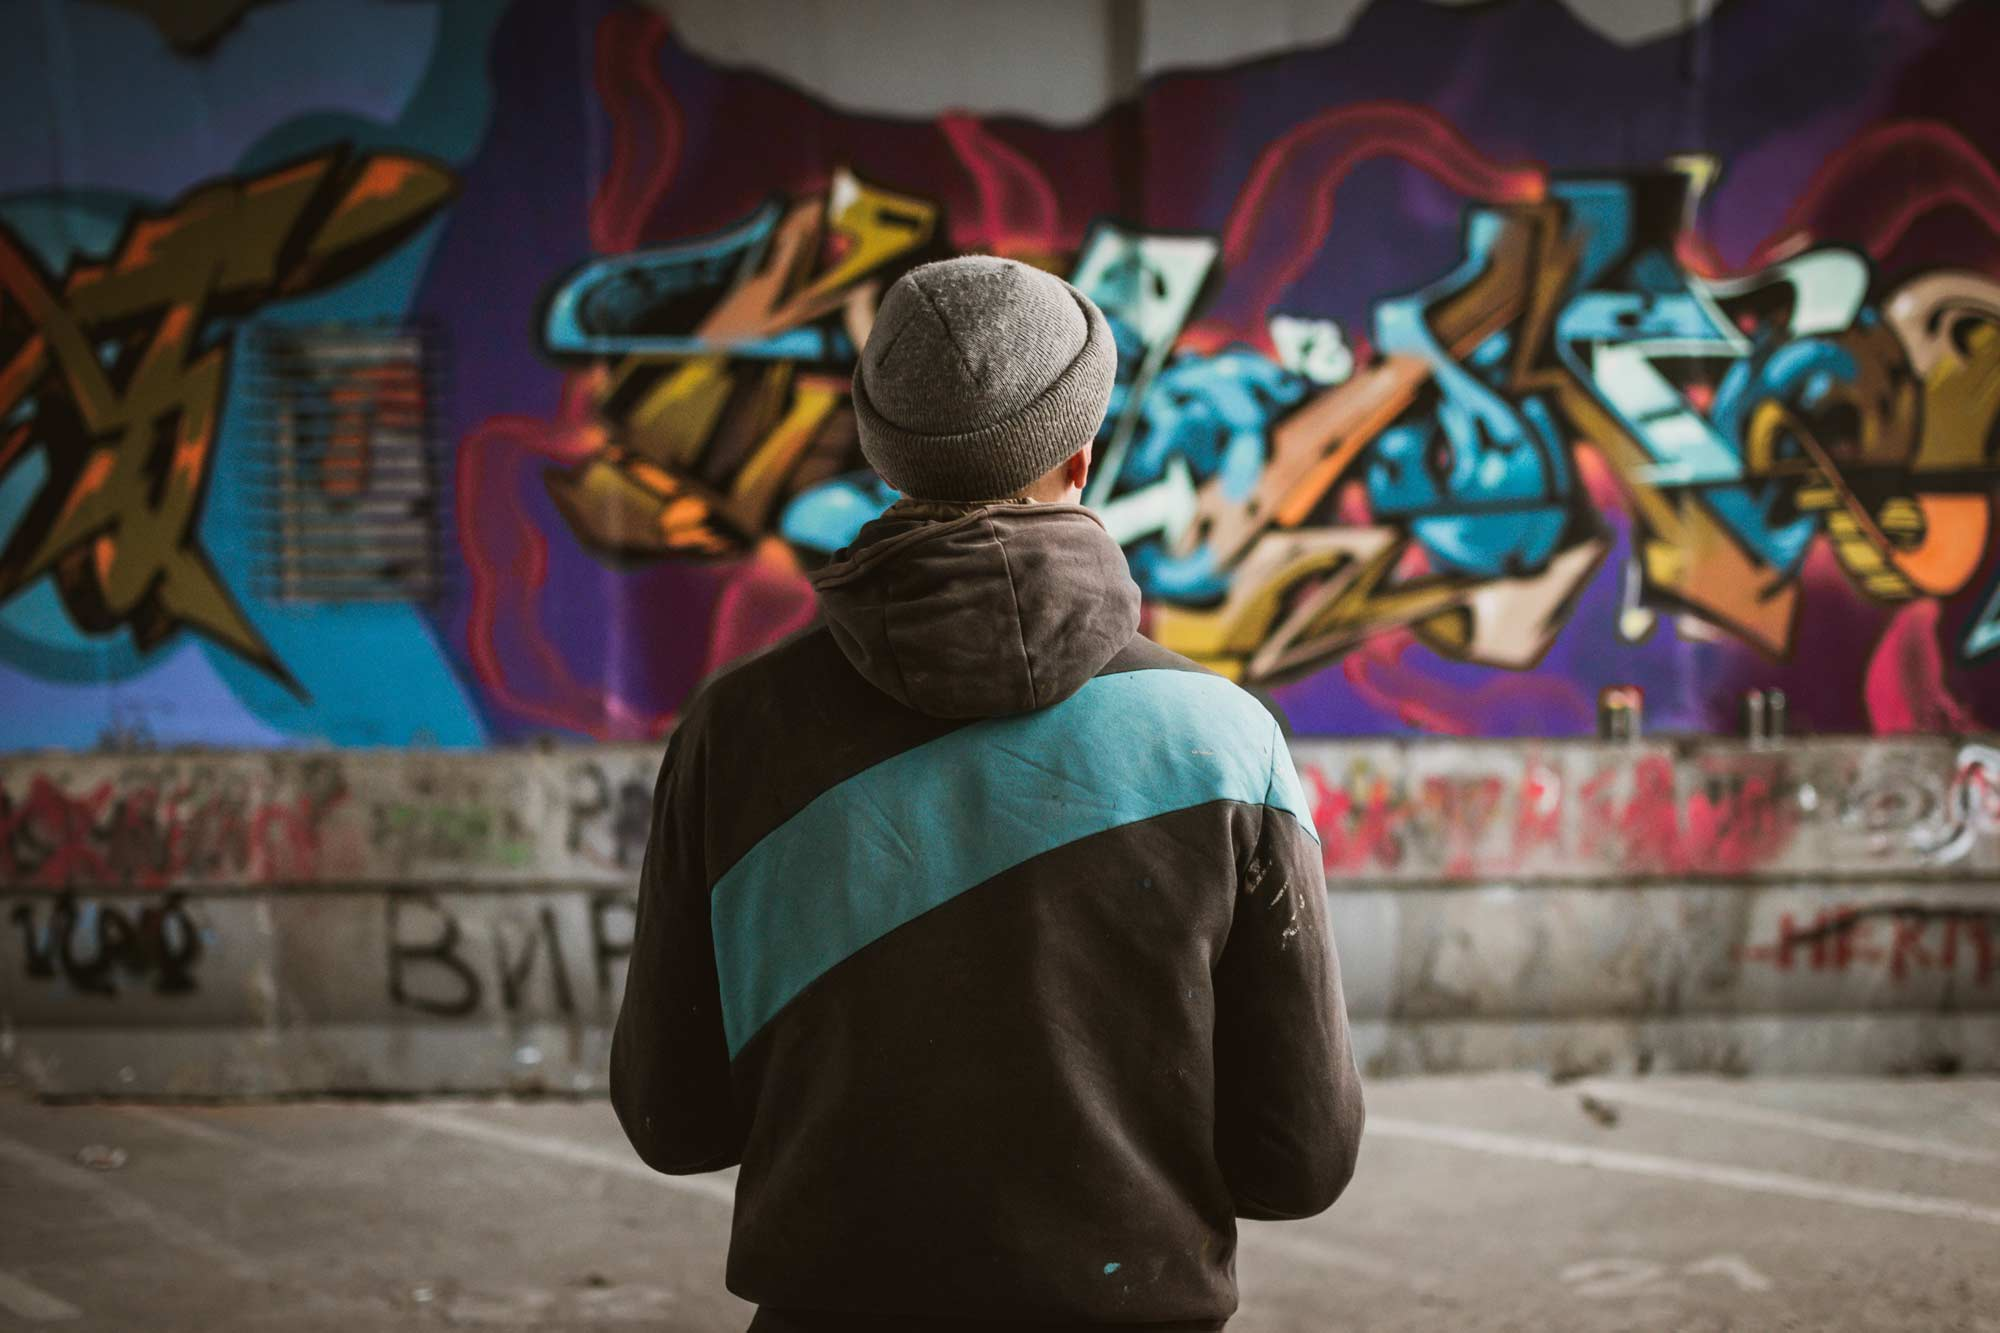 How to use graffiti art to improve your street photography